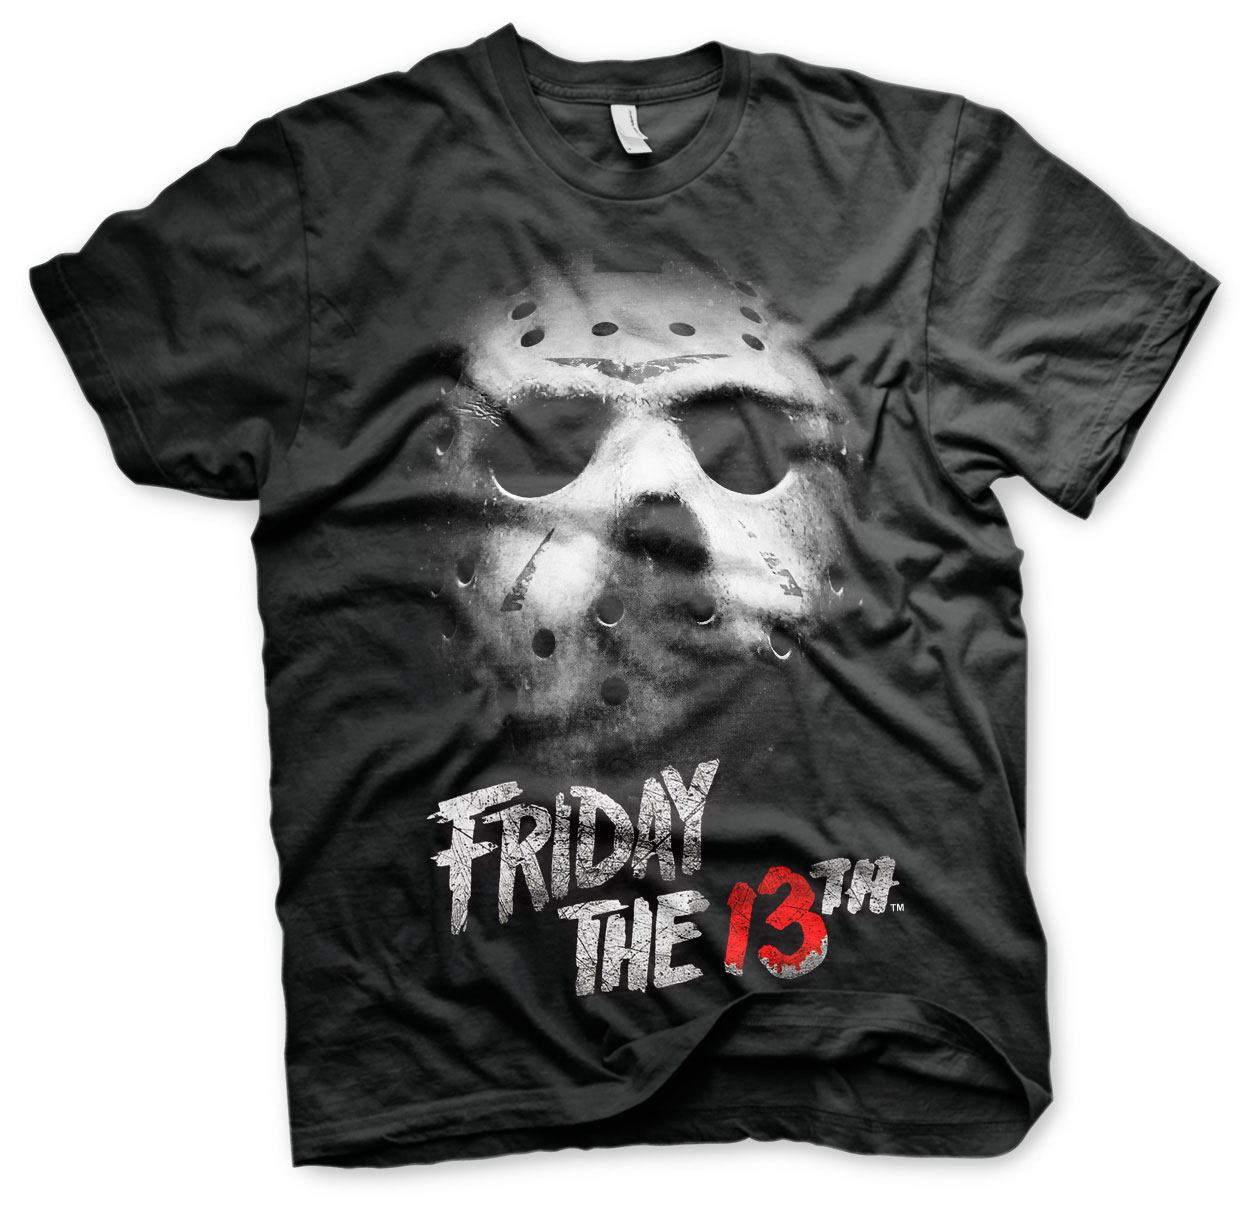 Friday the 13th T-Shirt Friday 13th Size M